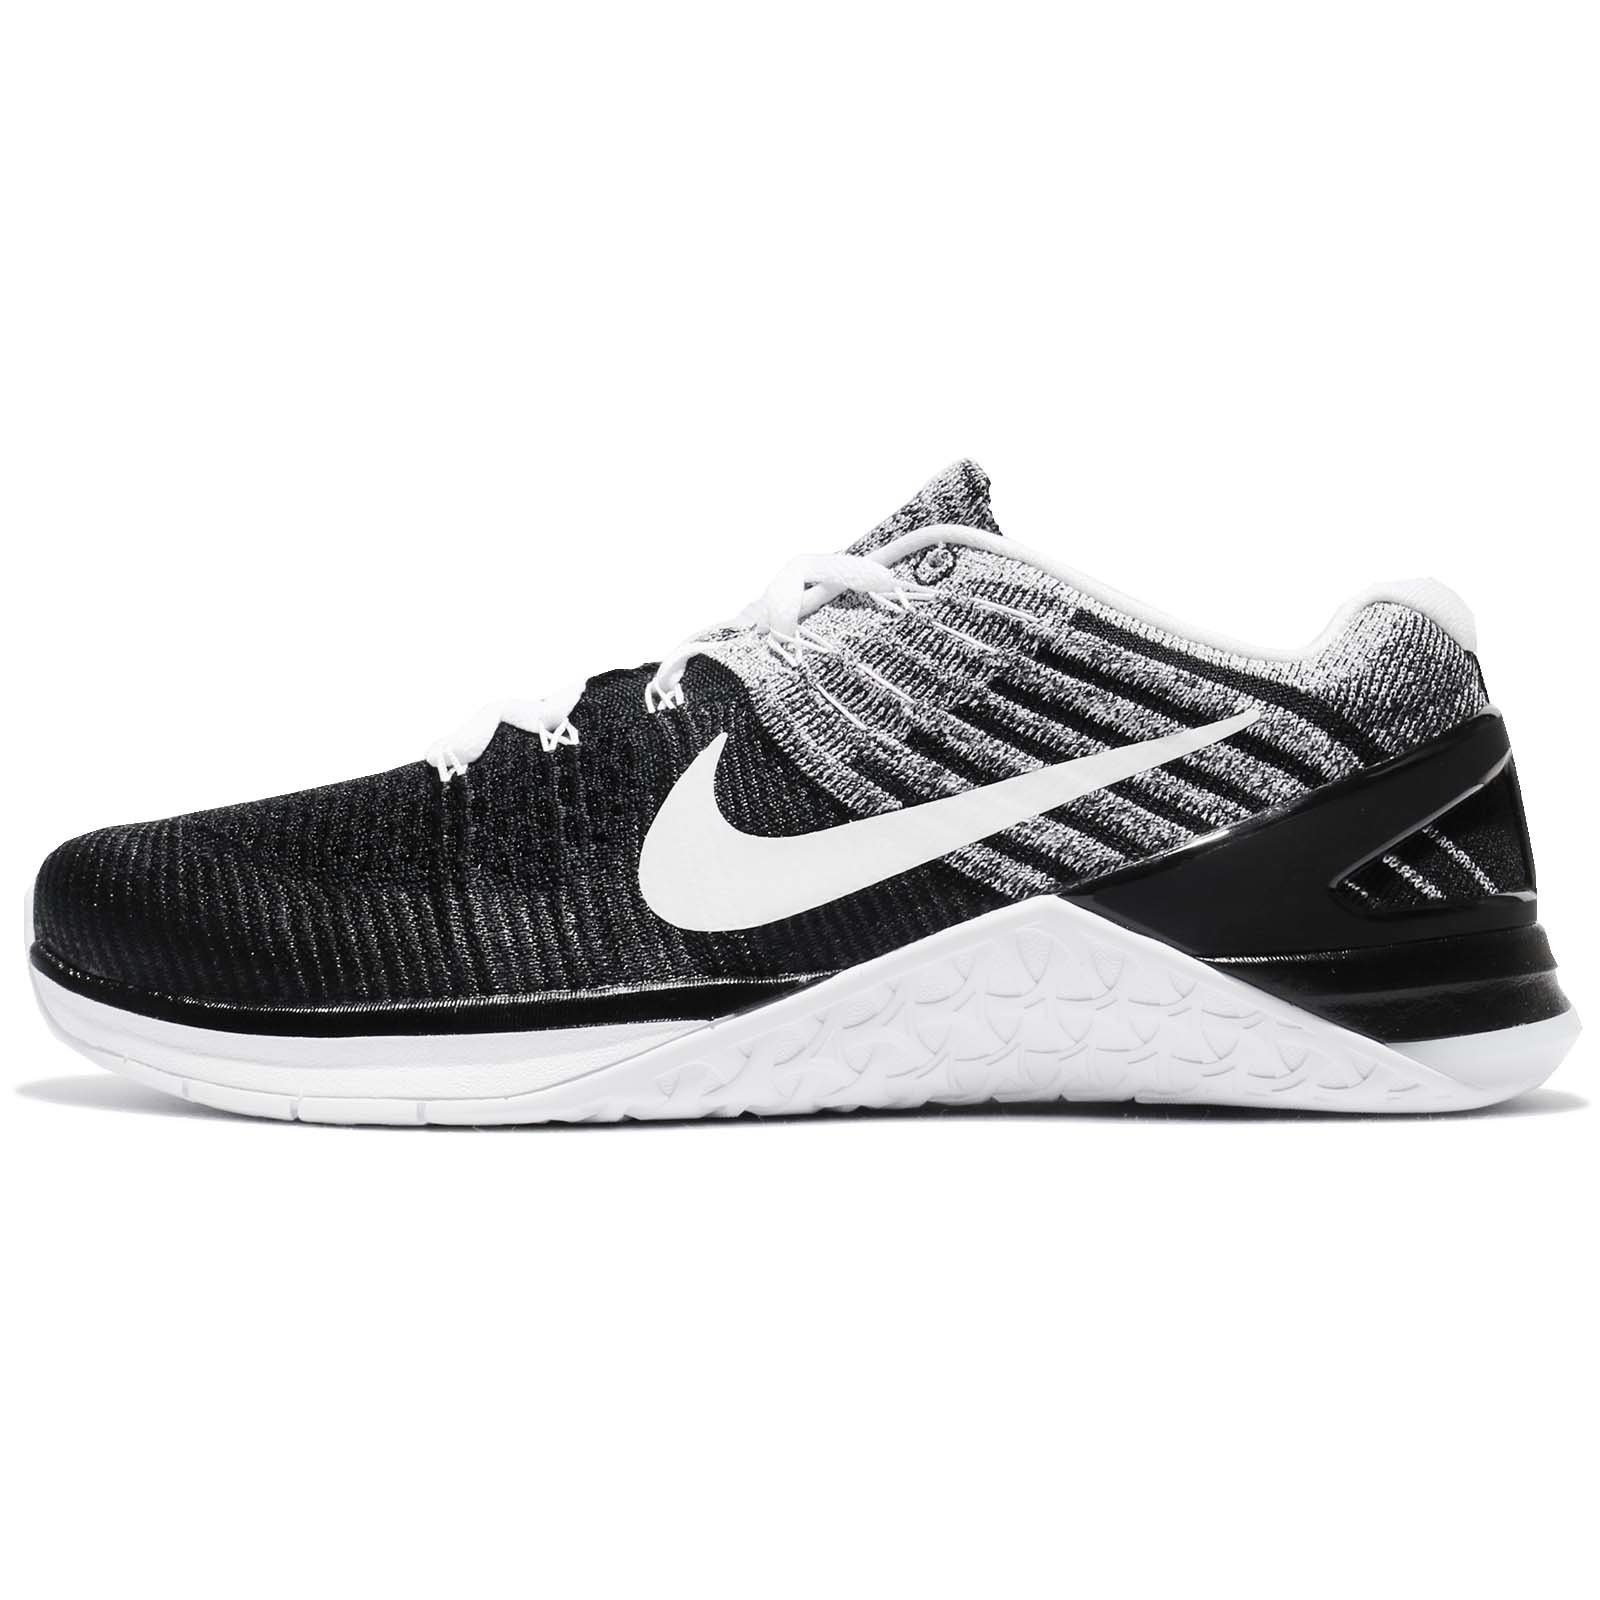 newest 28551 8fce9 Galleon - NIKE Metcon Xds Flyknit Mens Cross Training Shoes Black White  10.5 D(M) US